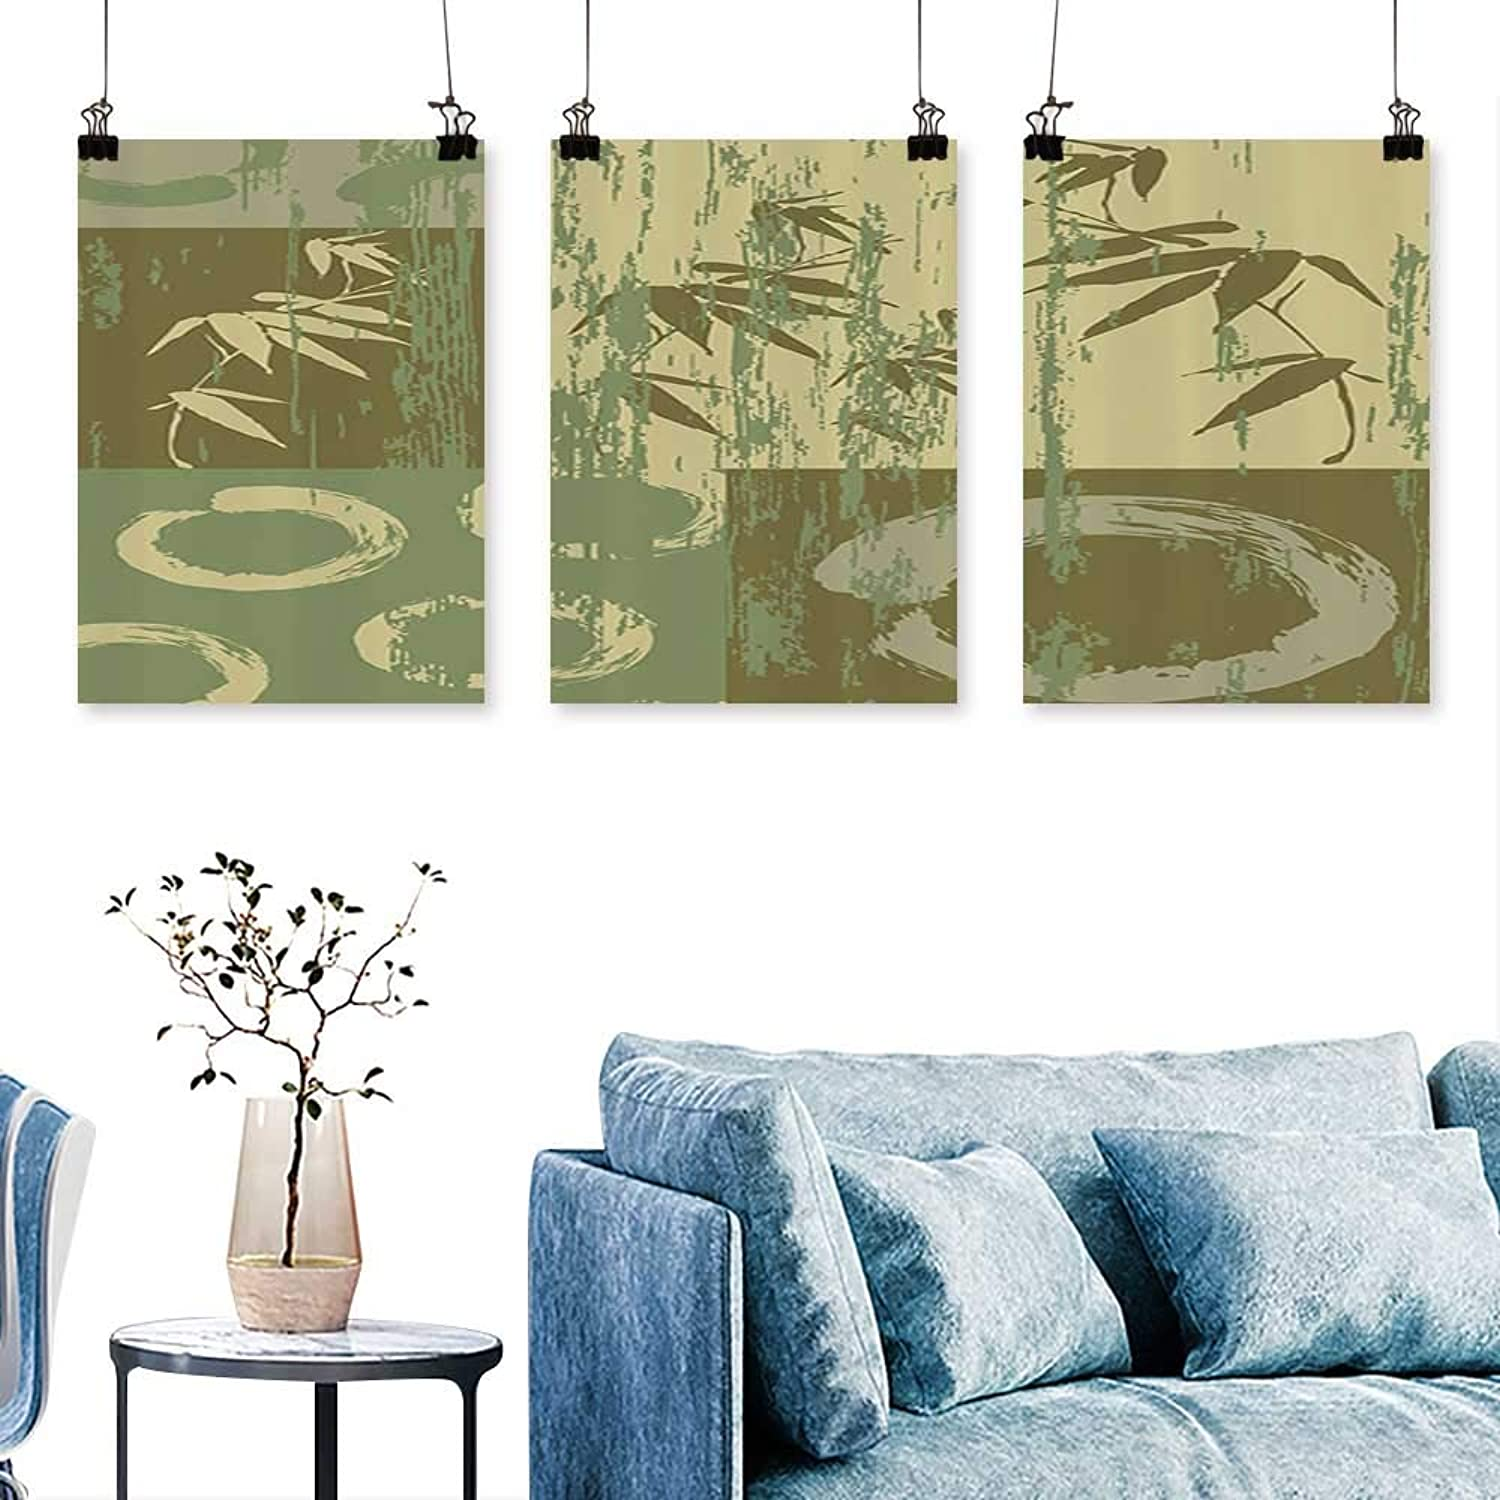 SCOCICI1588 Three Consecutive Painting Frameless Circle and Bamboo Silhouette Over Vintage color Oriental Eastern Patchwor for Home Modern Decoration No Frame 30 INCH X 60 INCH X 3PCS